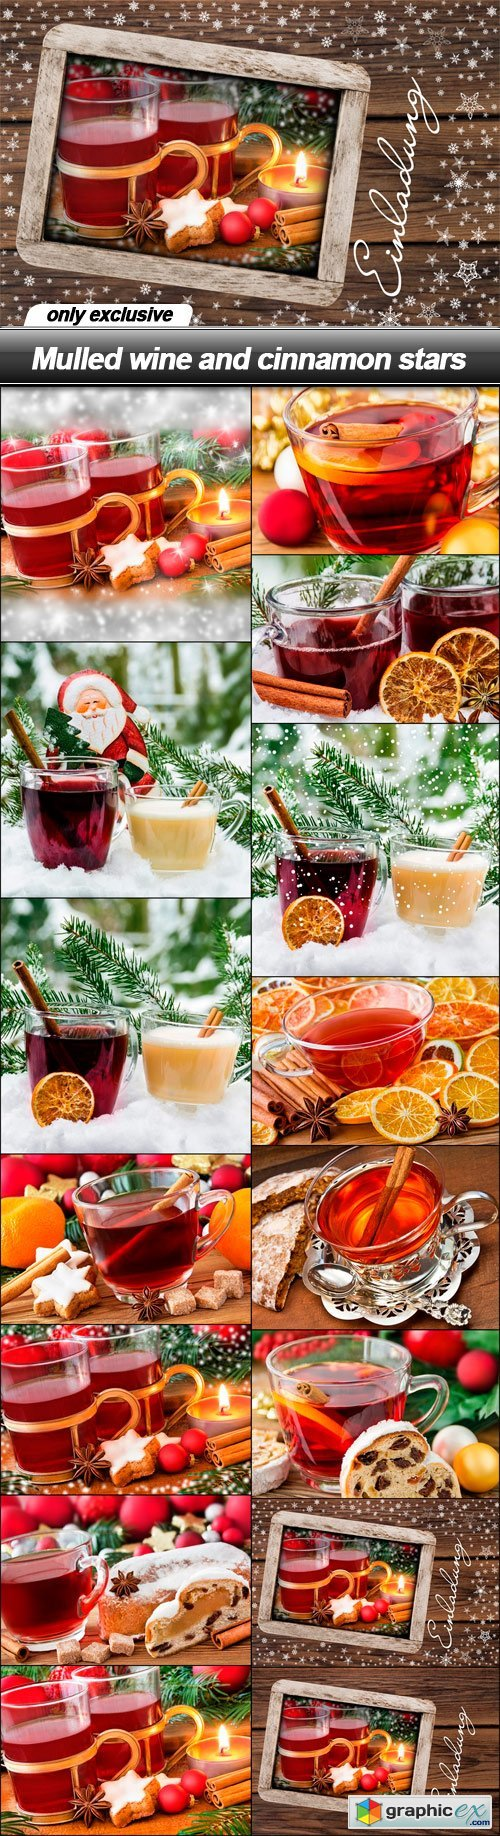 Mulled wine and cinnamon - 15 UHQ JPEG